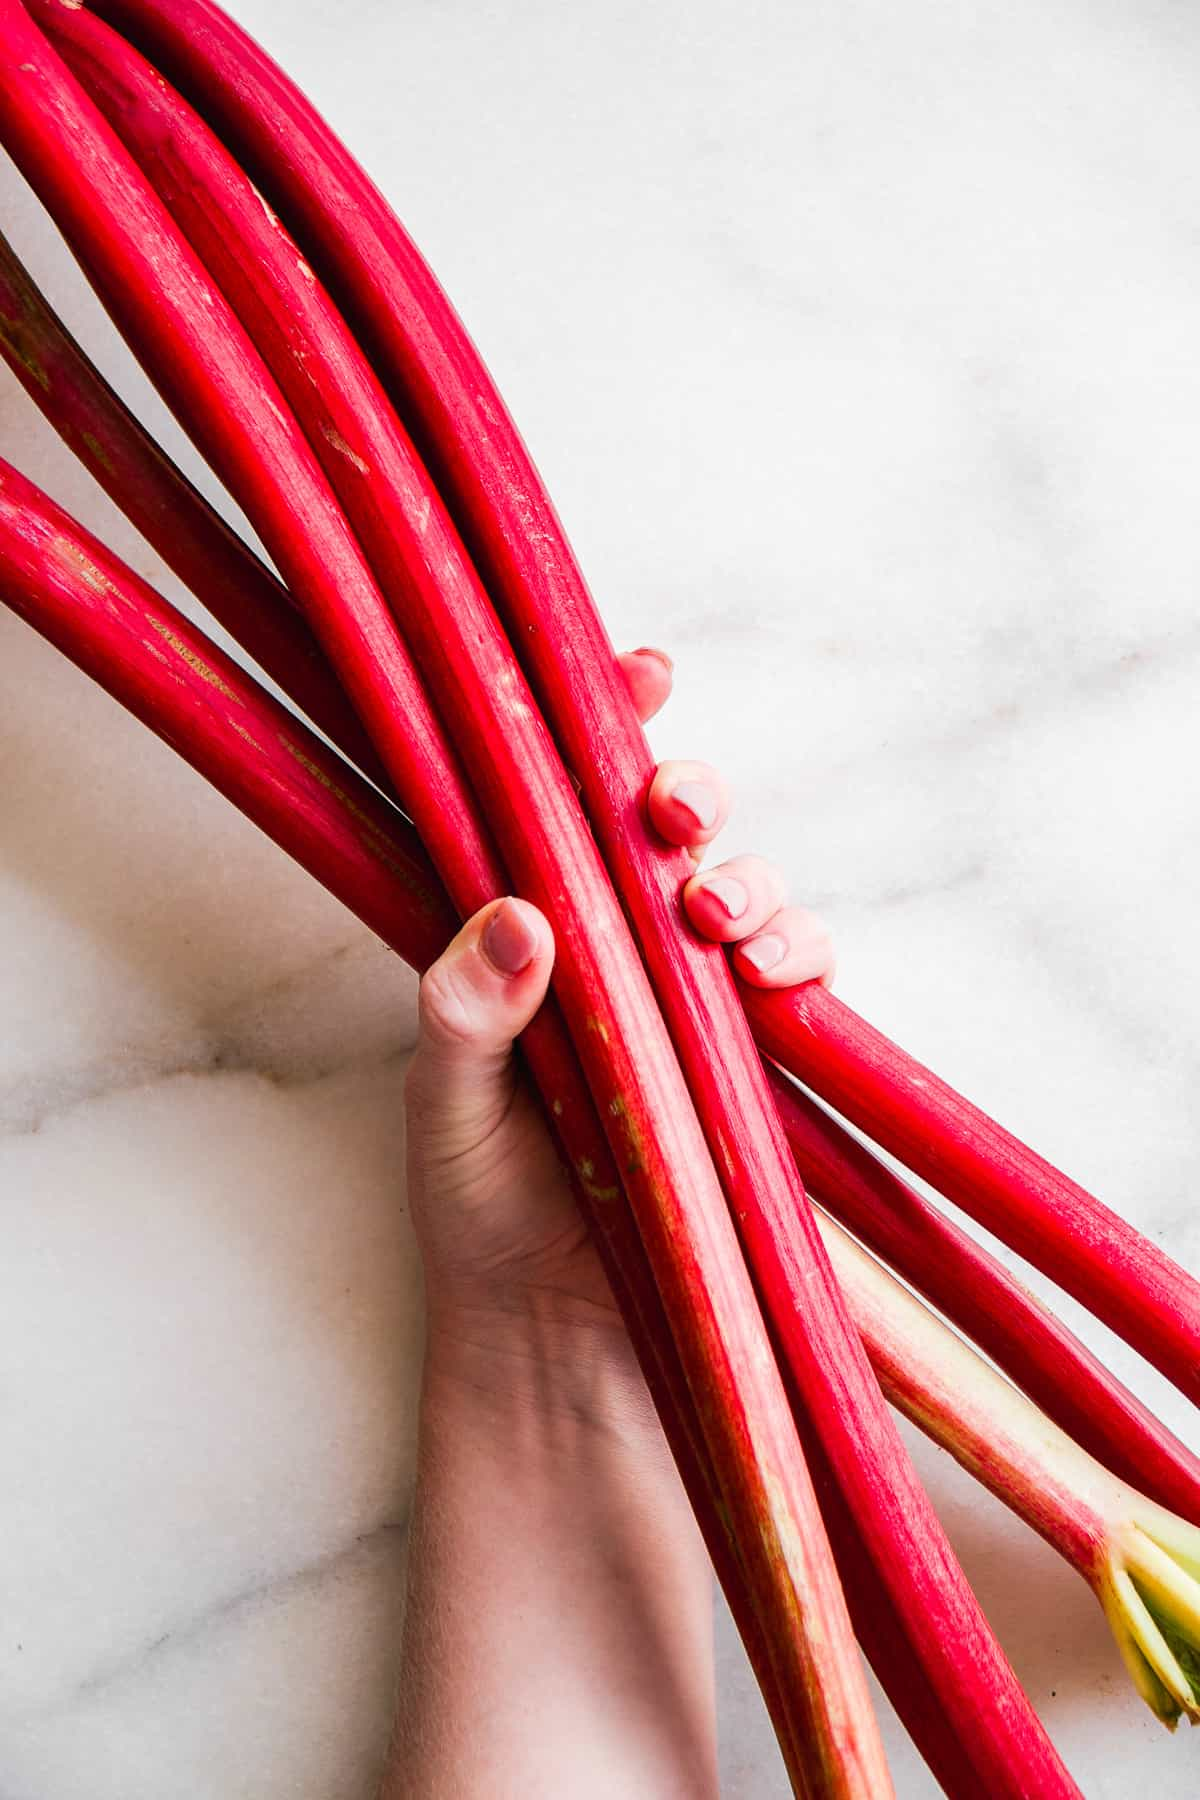 Hand holding a pile of rhubarb stalks on a white background.